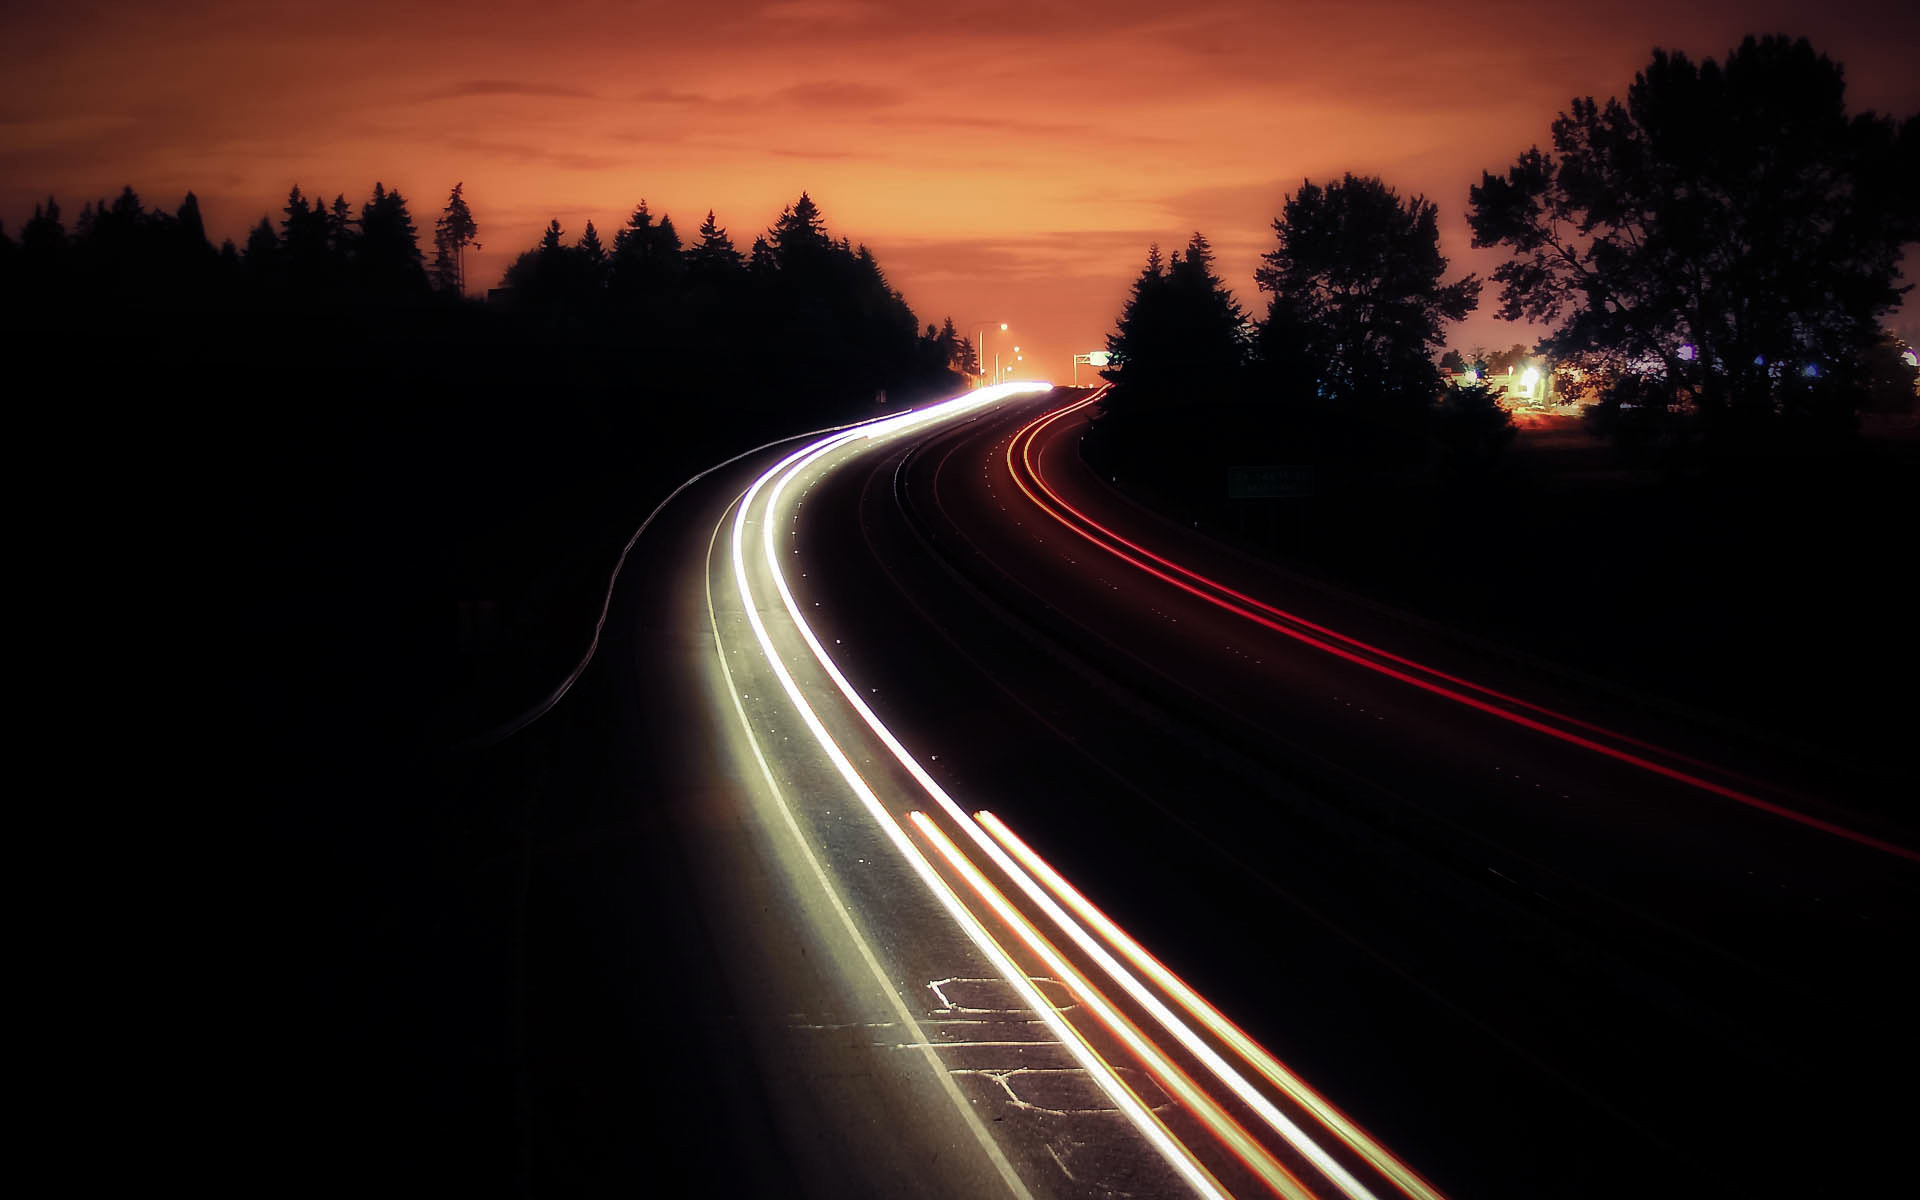 Photograph light trail by sujeeth kumar on 500px